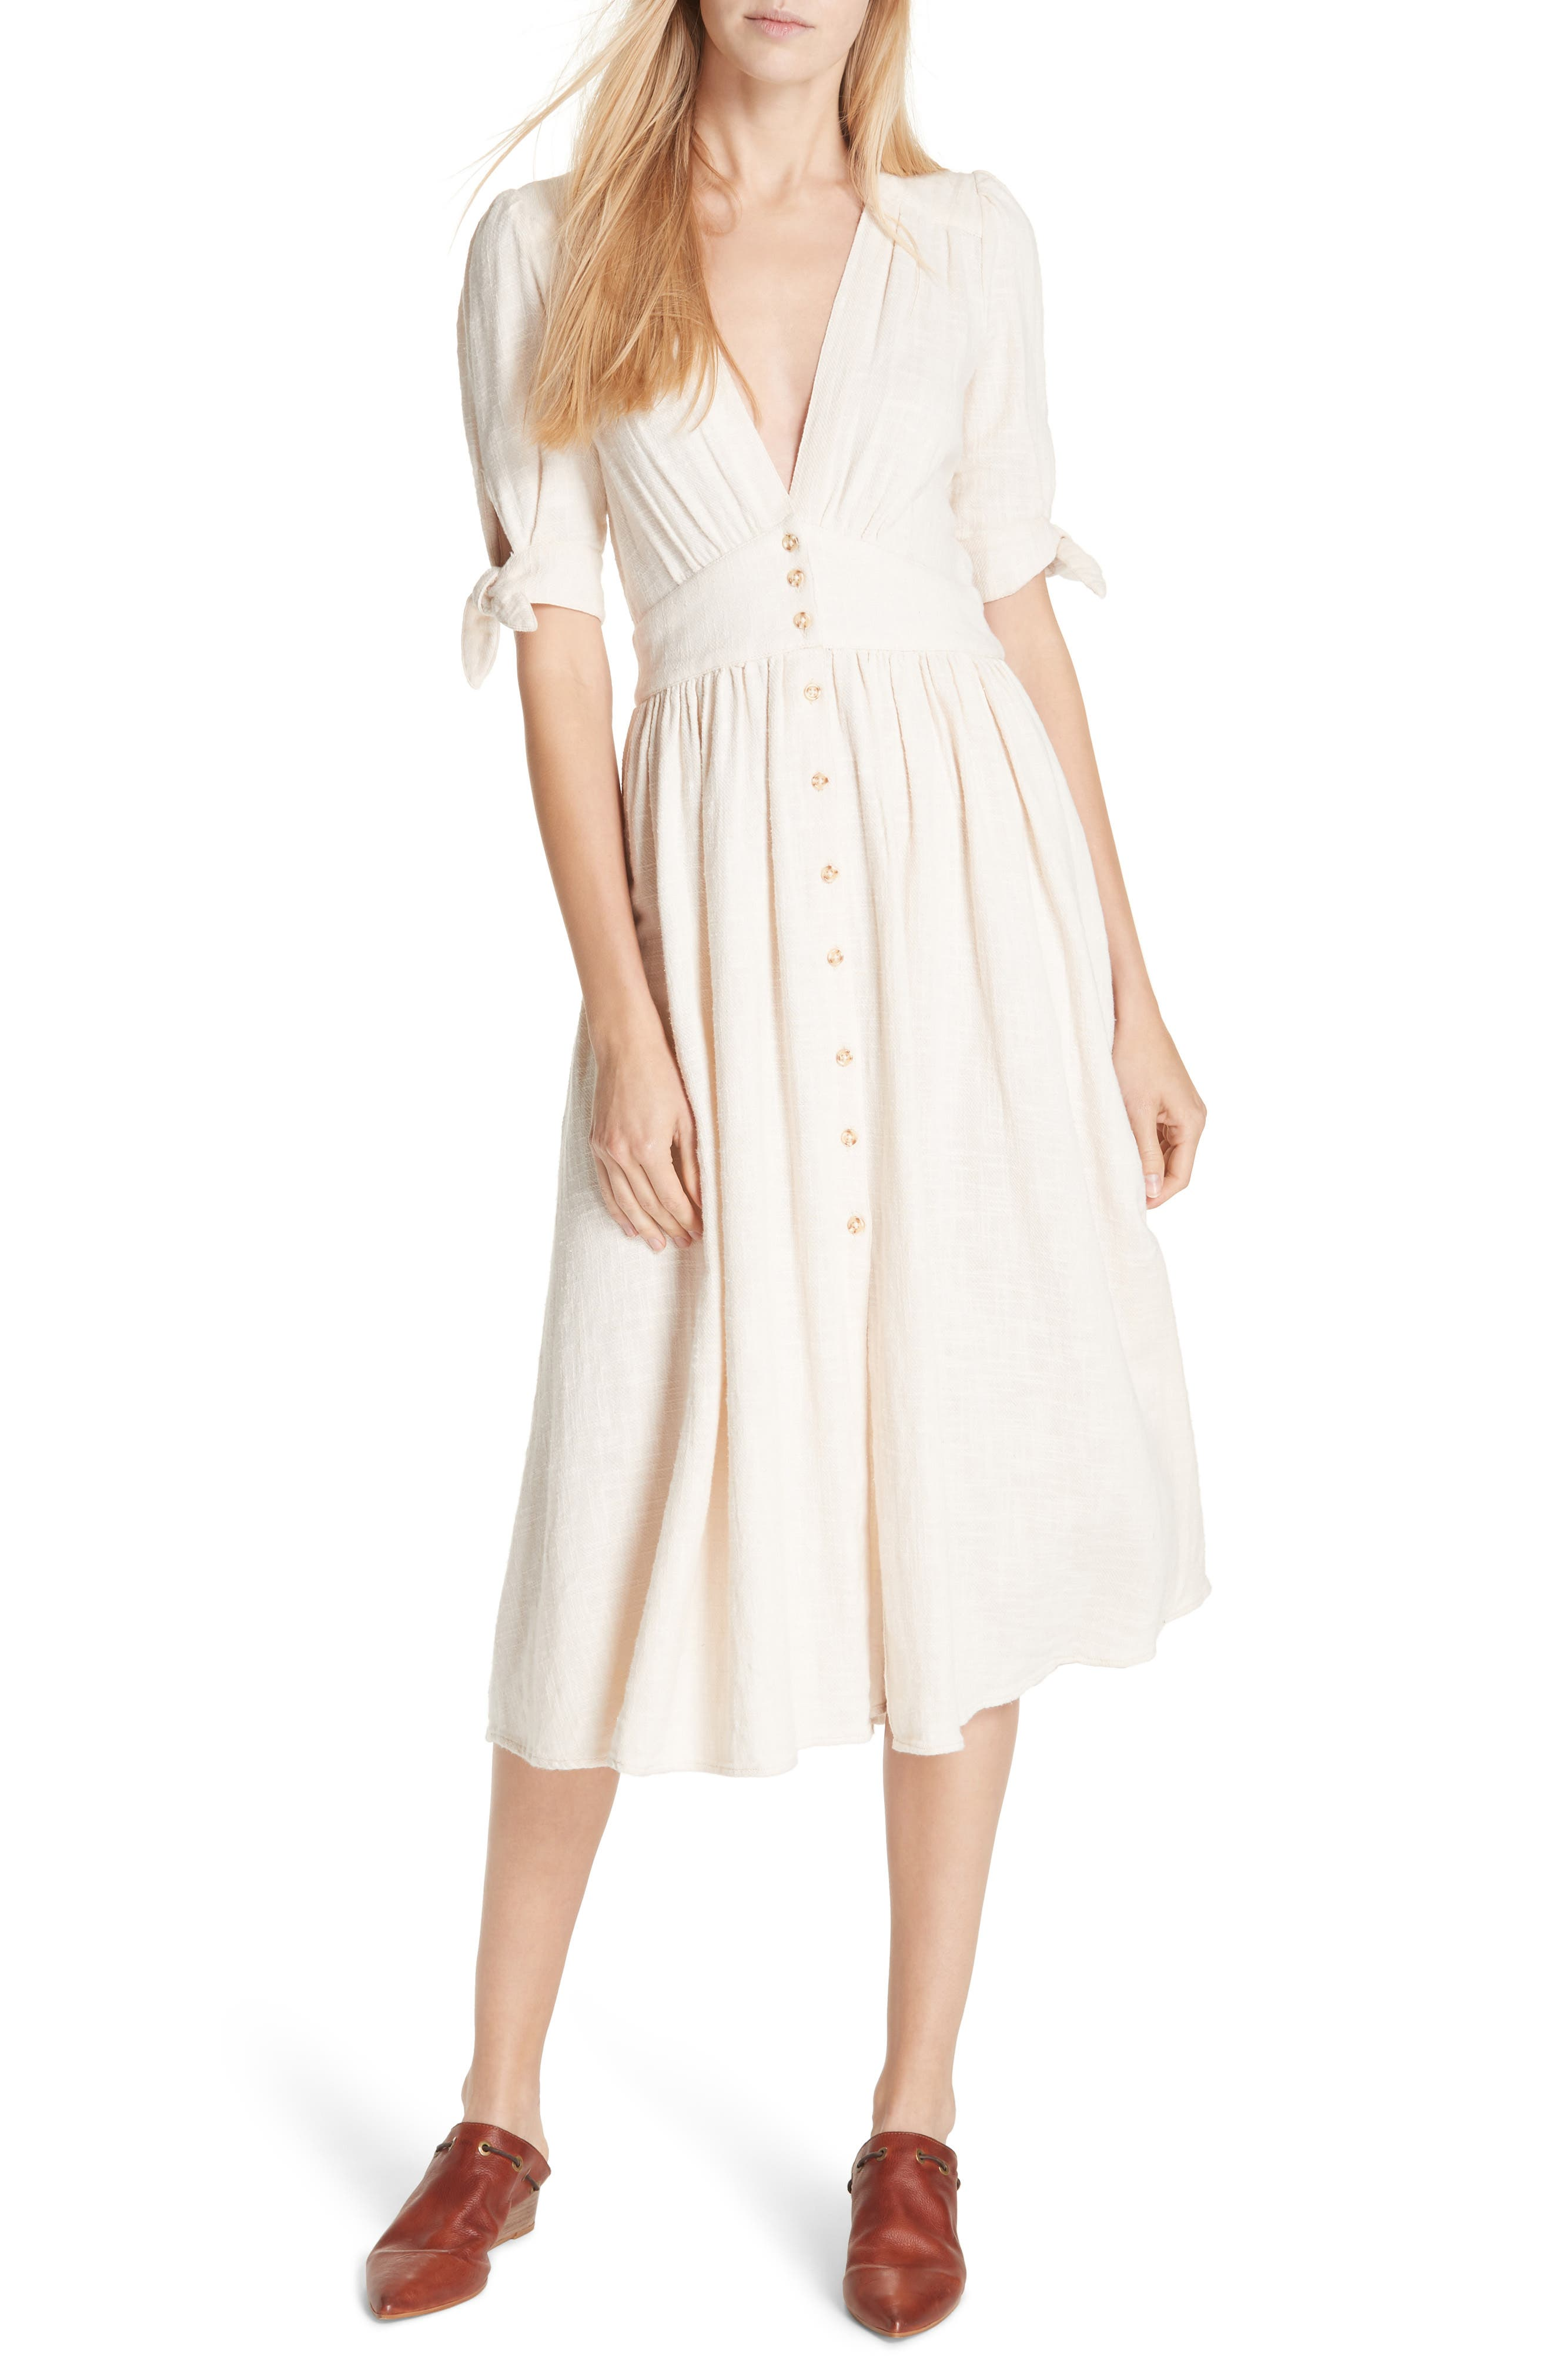 FREE PEOPLE, Love of My Life Midi Dress, Main thumbnail 1, color, IVORY